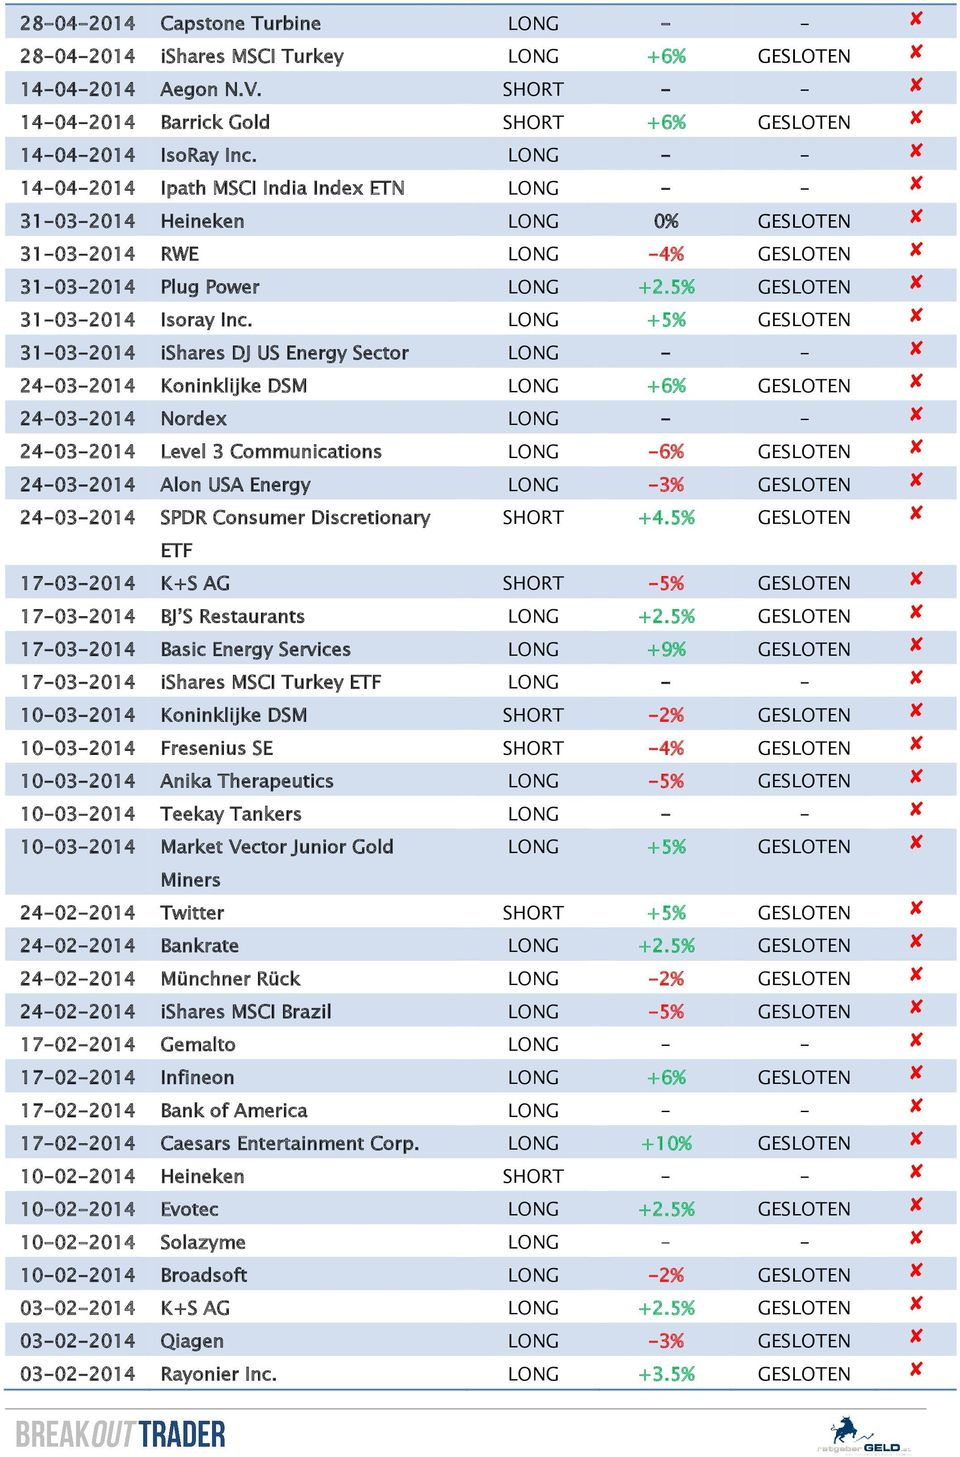 LONG +5% GESLOTEN 31-03-2014 ishares DJ US Energy Sector LONG - - 24-03-2014 Koninklijke DSM LONG +6% GESLOTEN 24-03-2014 Nordex LONG - - 24-03-2014 Level 3 Communications LONG -6% GESLOTEN